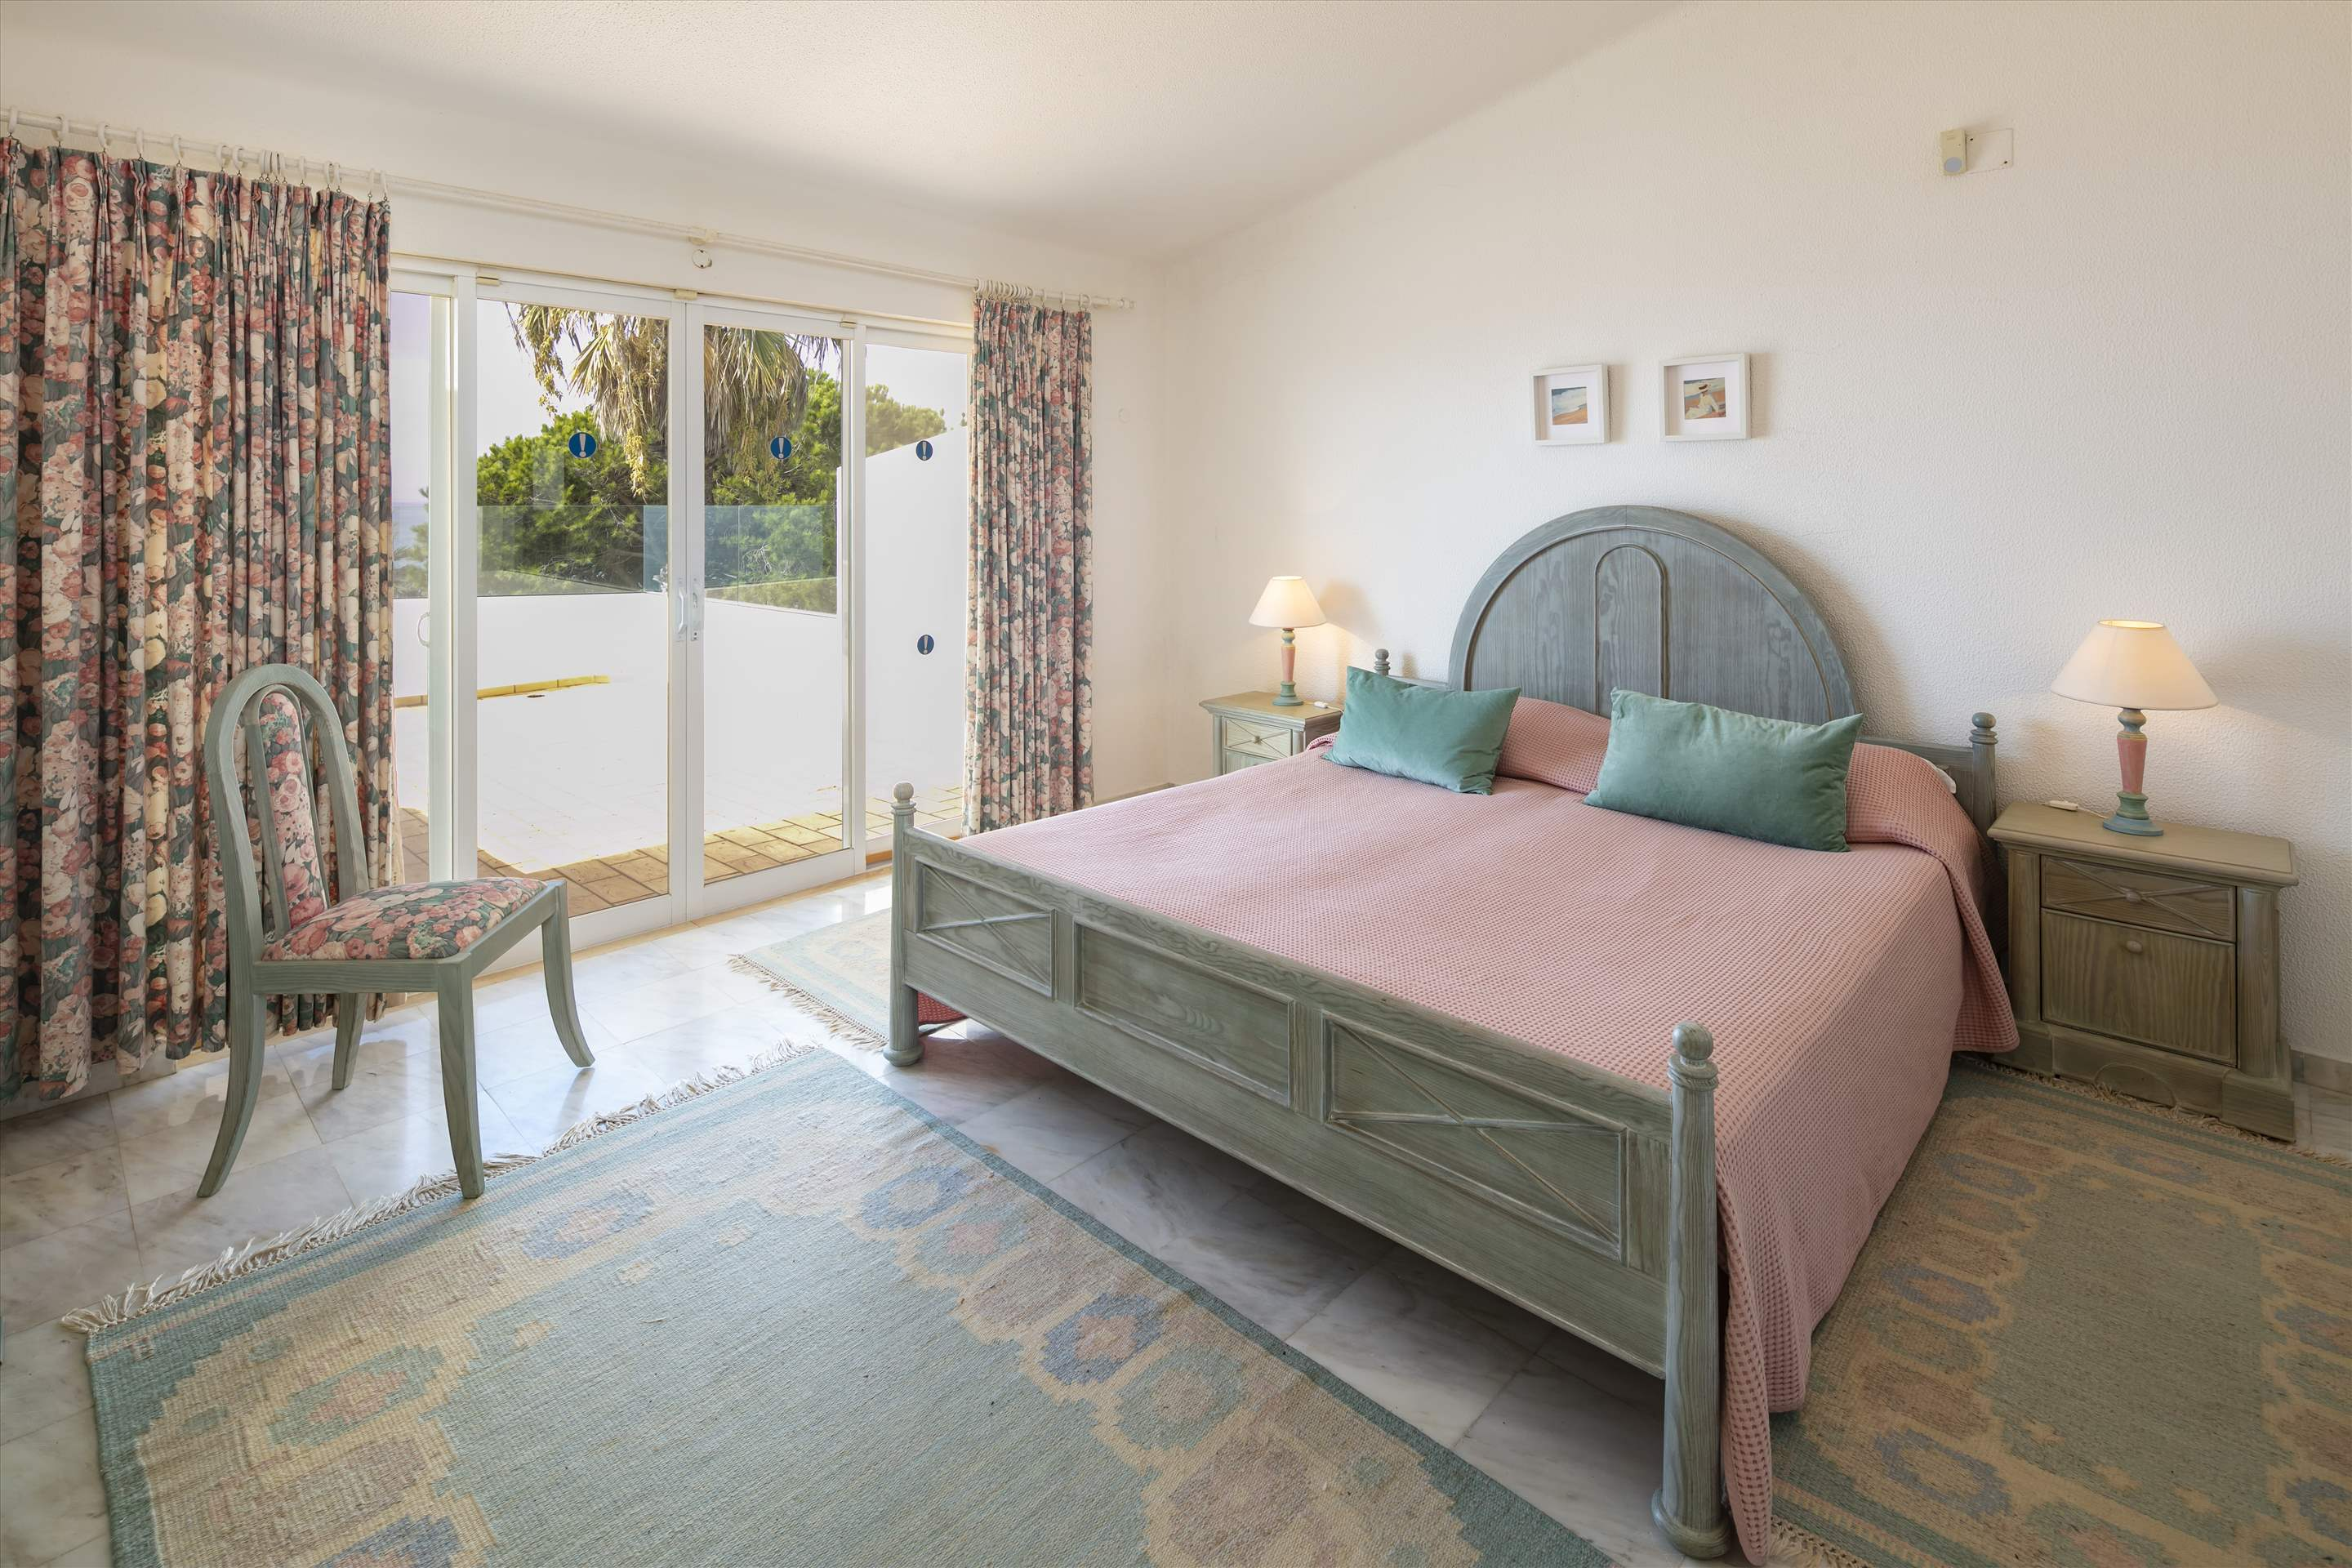 Villa Ocean Beach, 4 bedroom villa in Vale do Lobo, Algarve Photo #13